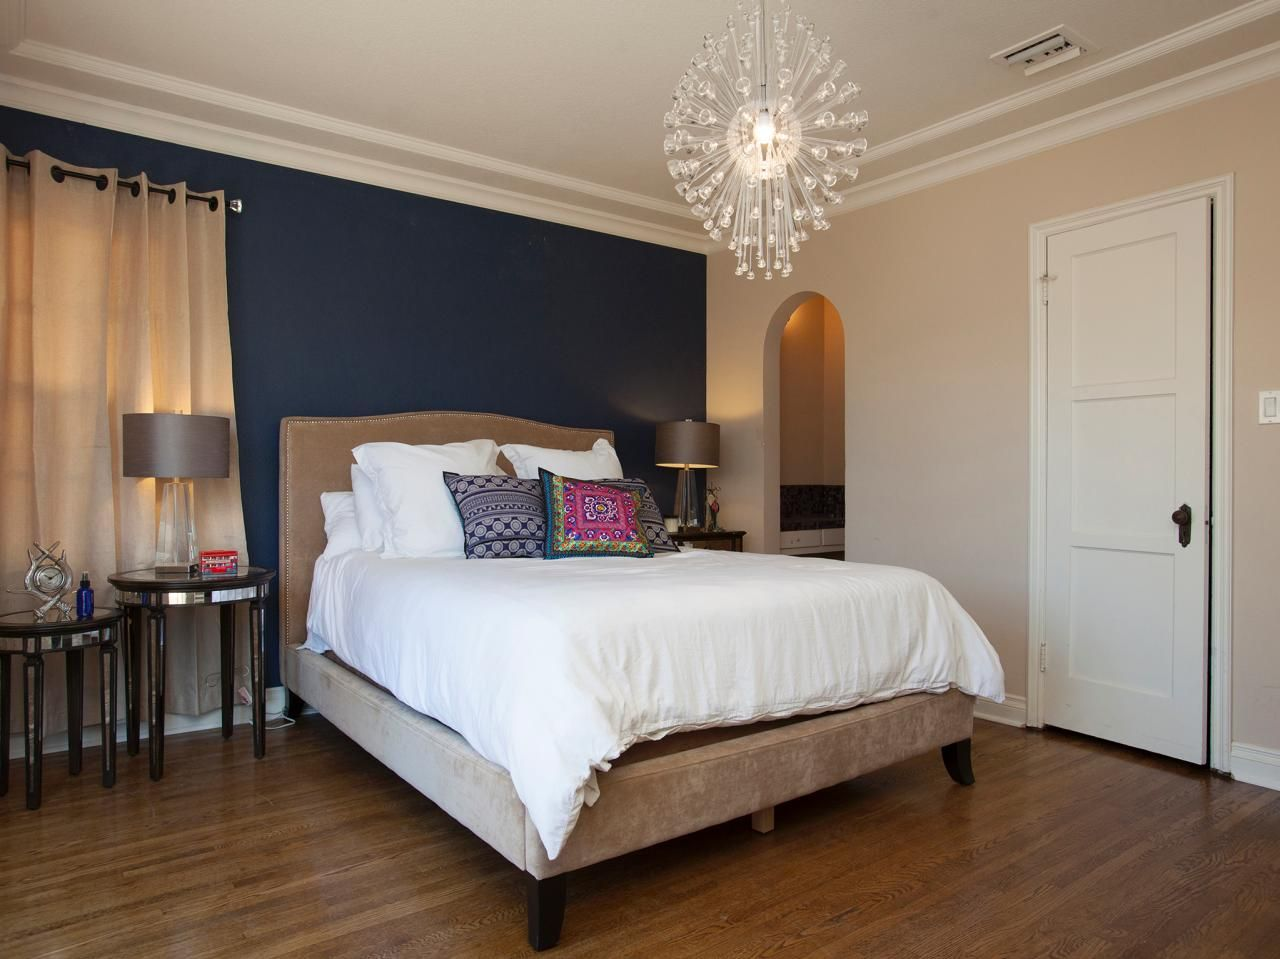 25 amazing room makeovers from hgtv 39 s house hunters for Room makeover